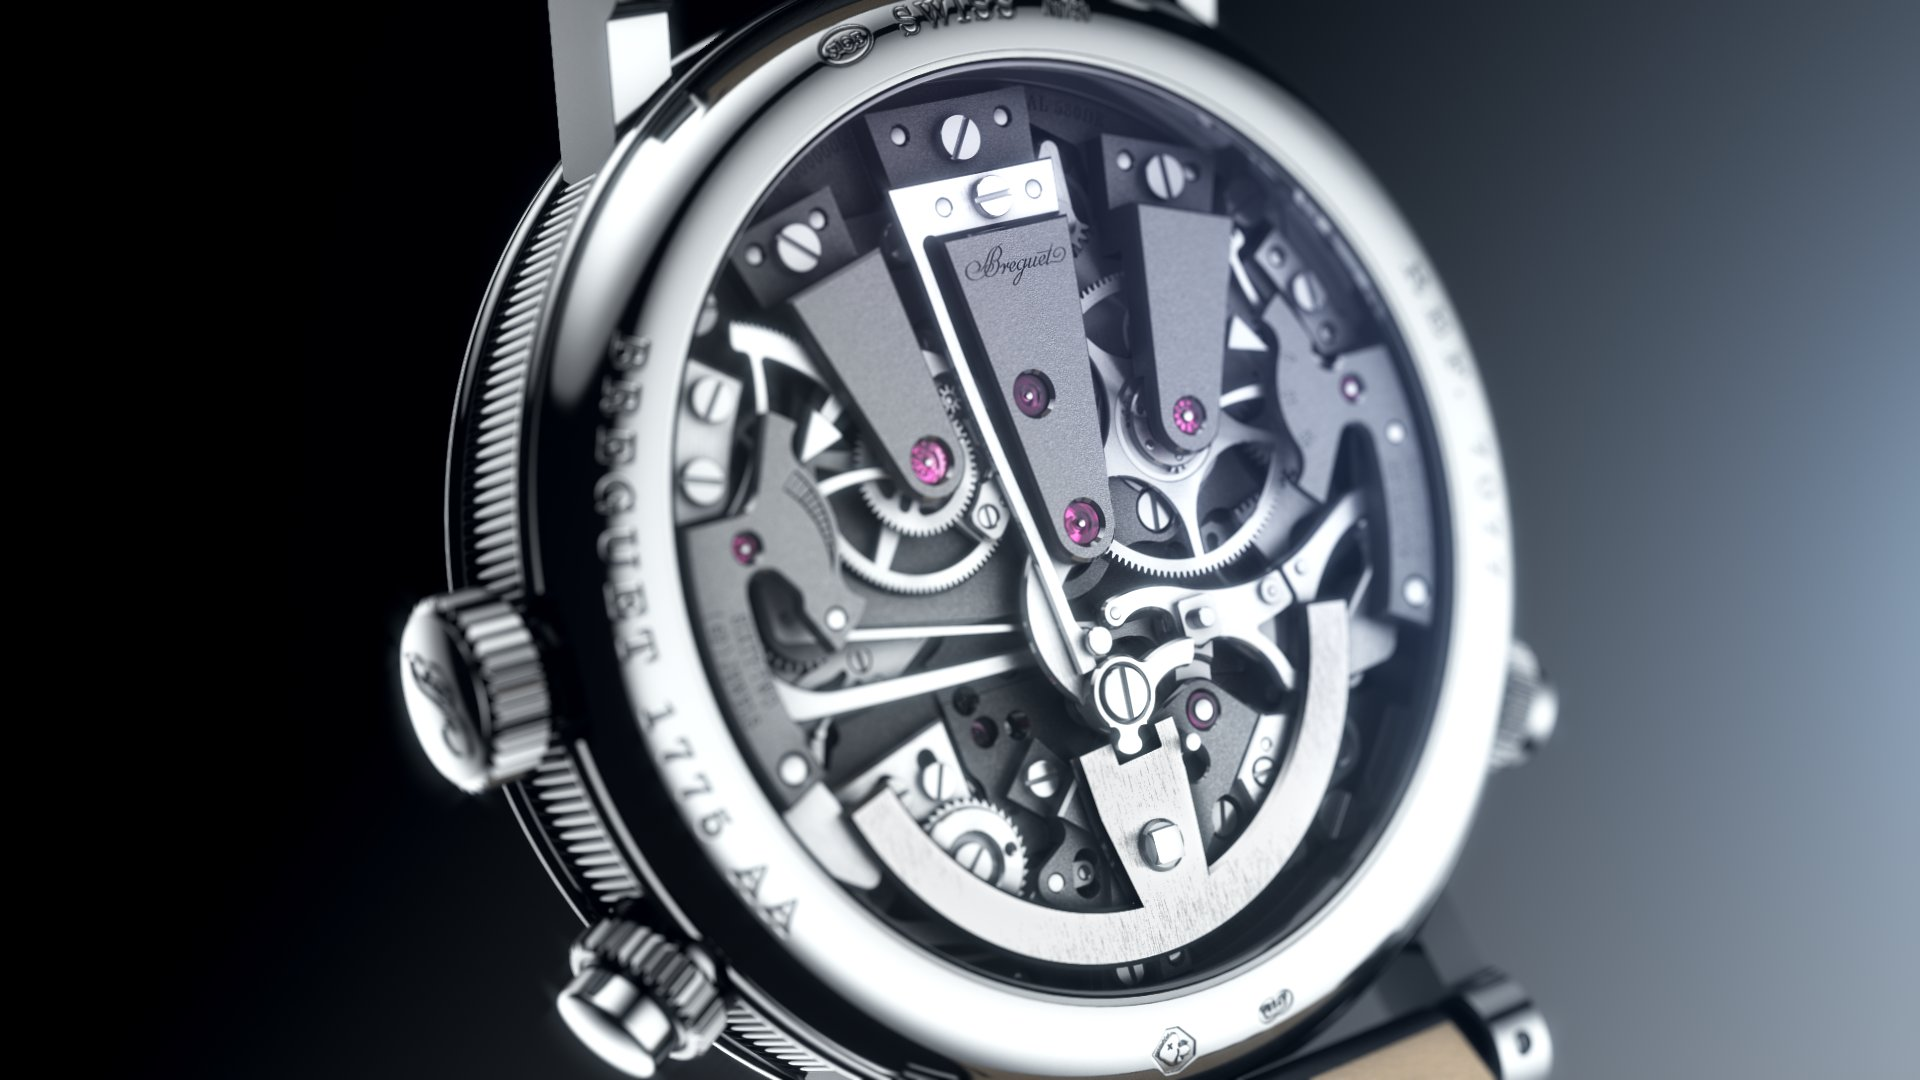 3DVISION NYVALIS 2015 BREGUET Tradition Chrono 05